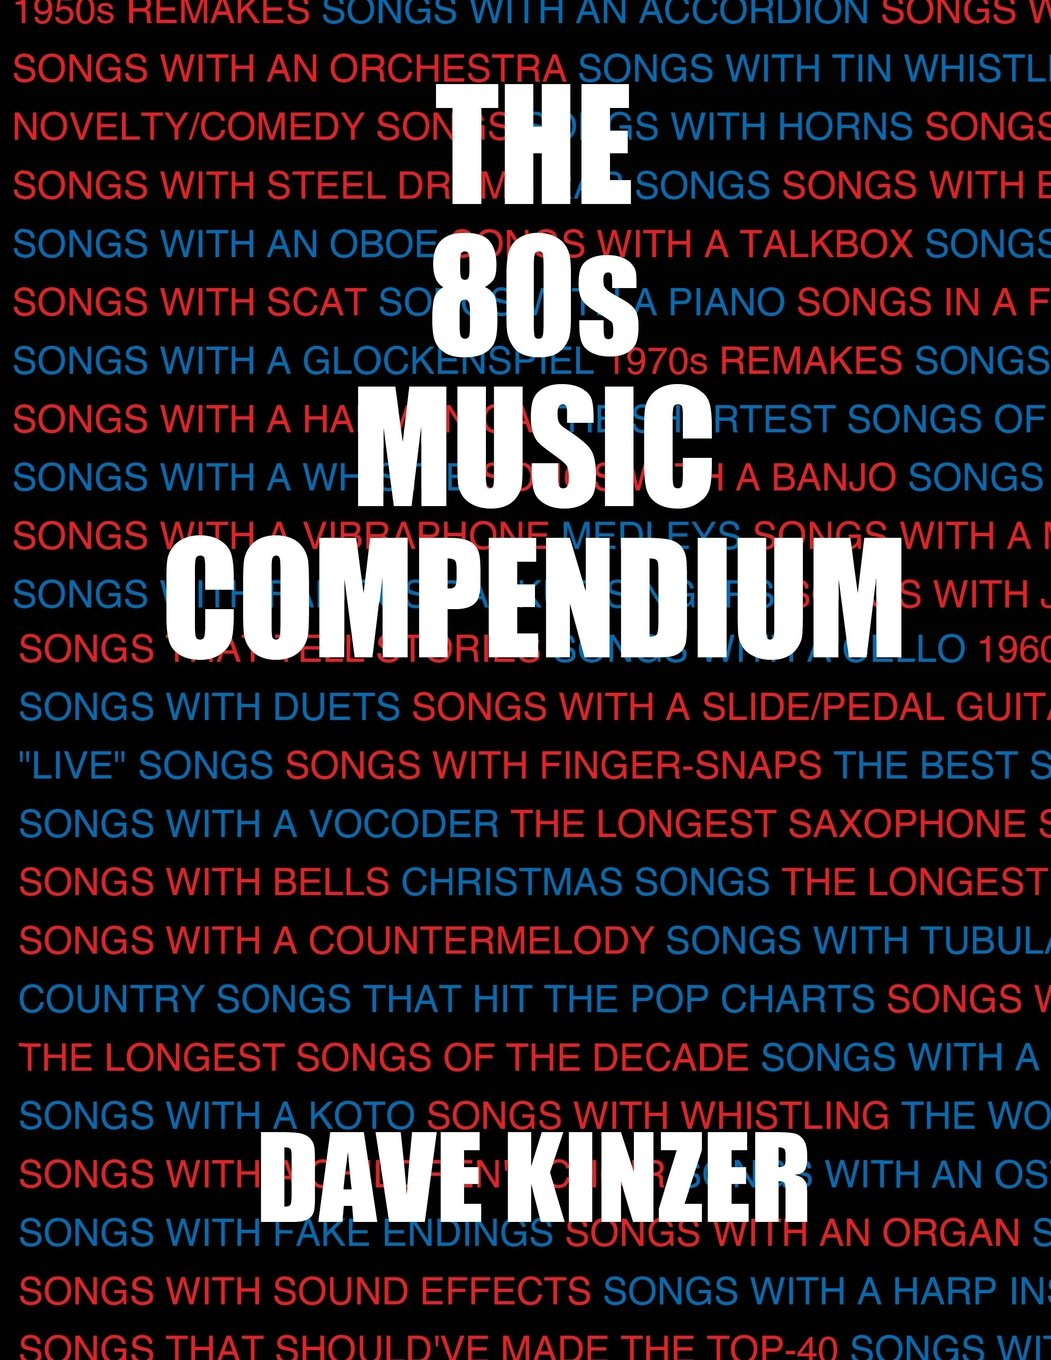 Tremendous Qa With Dave Kinzer Author Of The 80S Music Compendium Like Hairstyles For Women Draintrainus